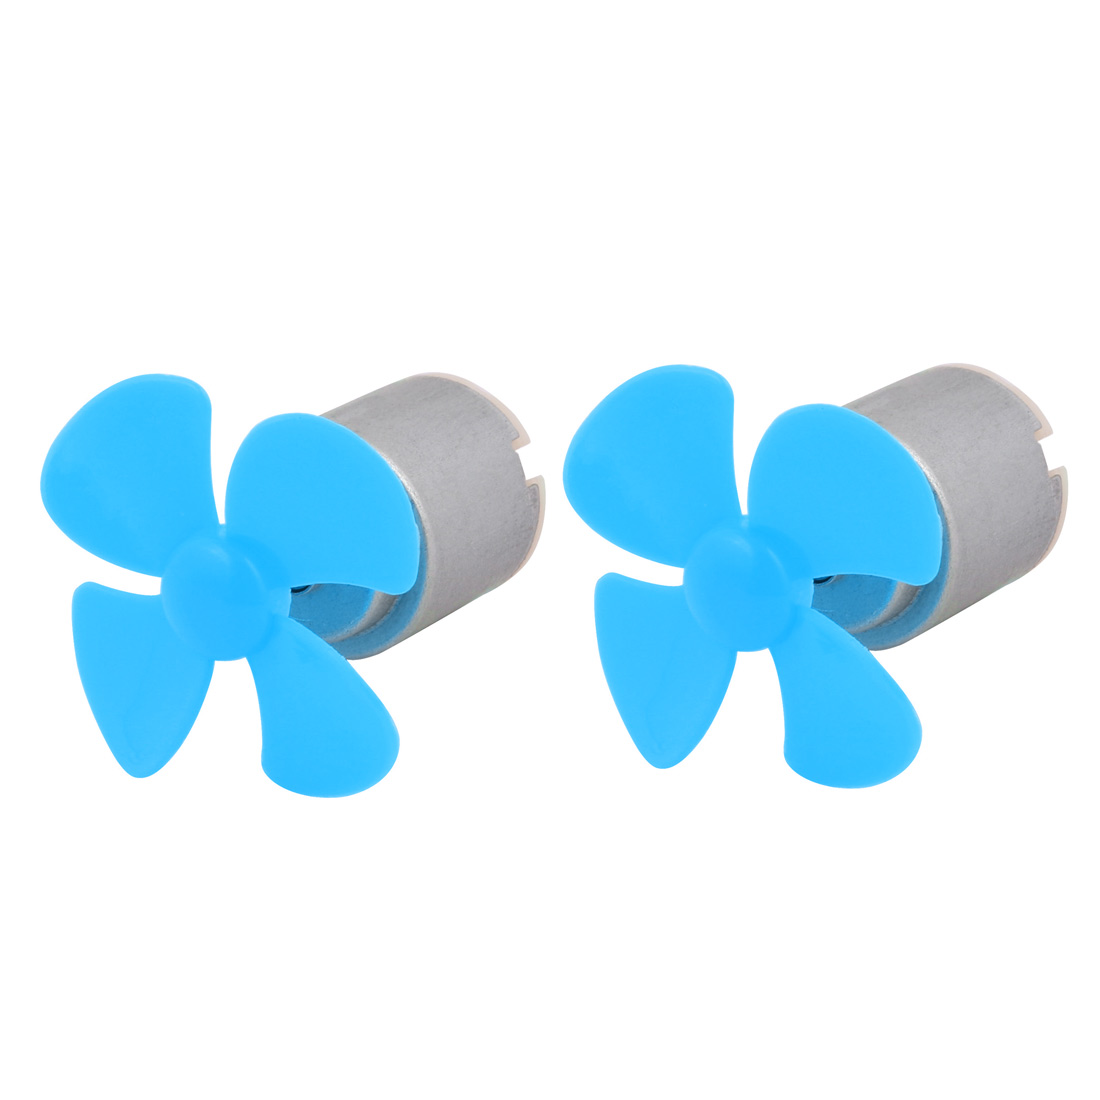 2Pcs DC 3V 0.13A 9000RPM Large Torque Motor 4-Vane 40mm Dia Propeller Blue for RC Model